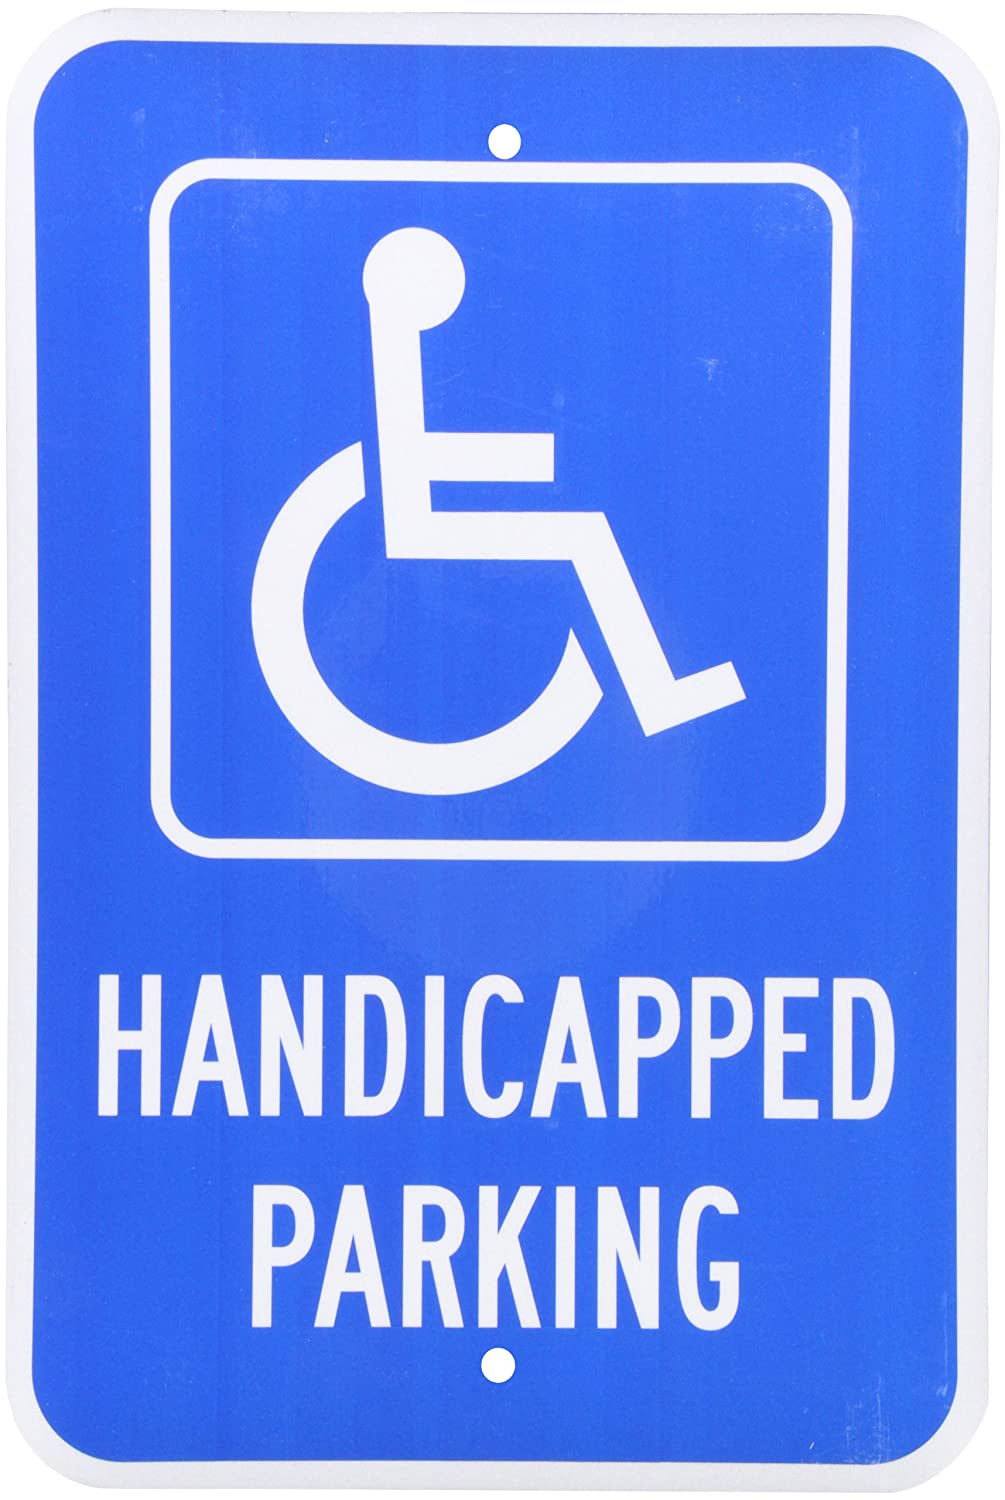 SmartSign 3M Engineer Grade Reflective Sign, LegendHandicapped Parking with Graphic, 18 high x 12 wide, White on Blue Lyle Signs K-1519-EG-12x18-D2